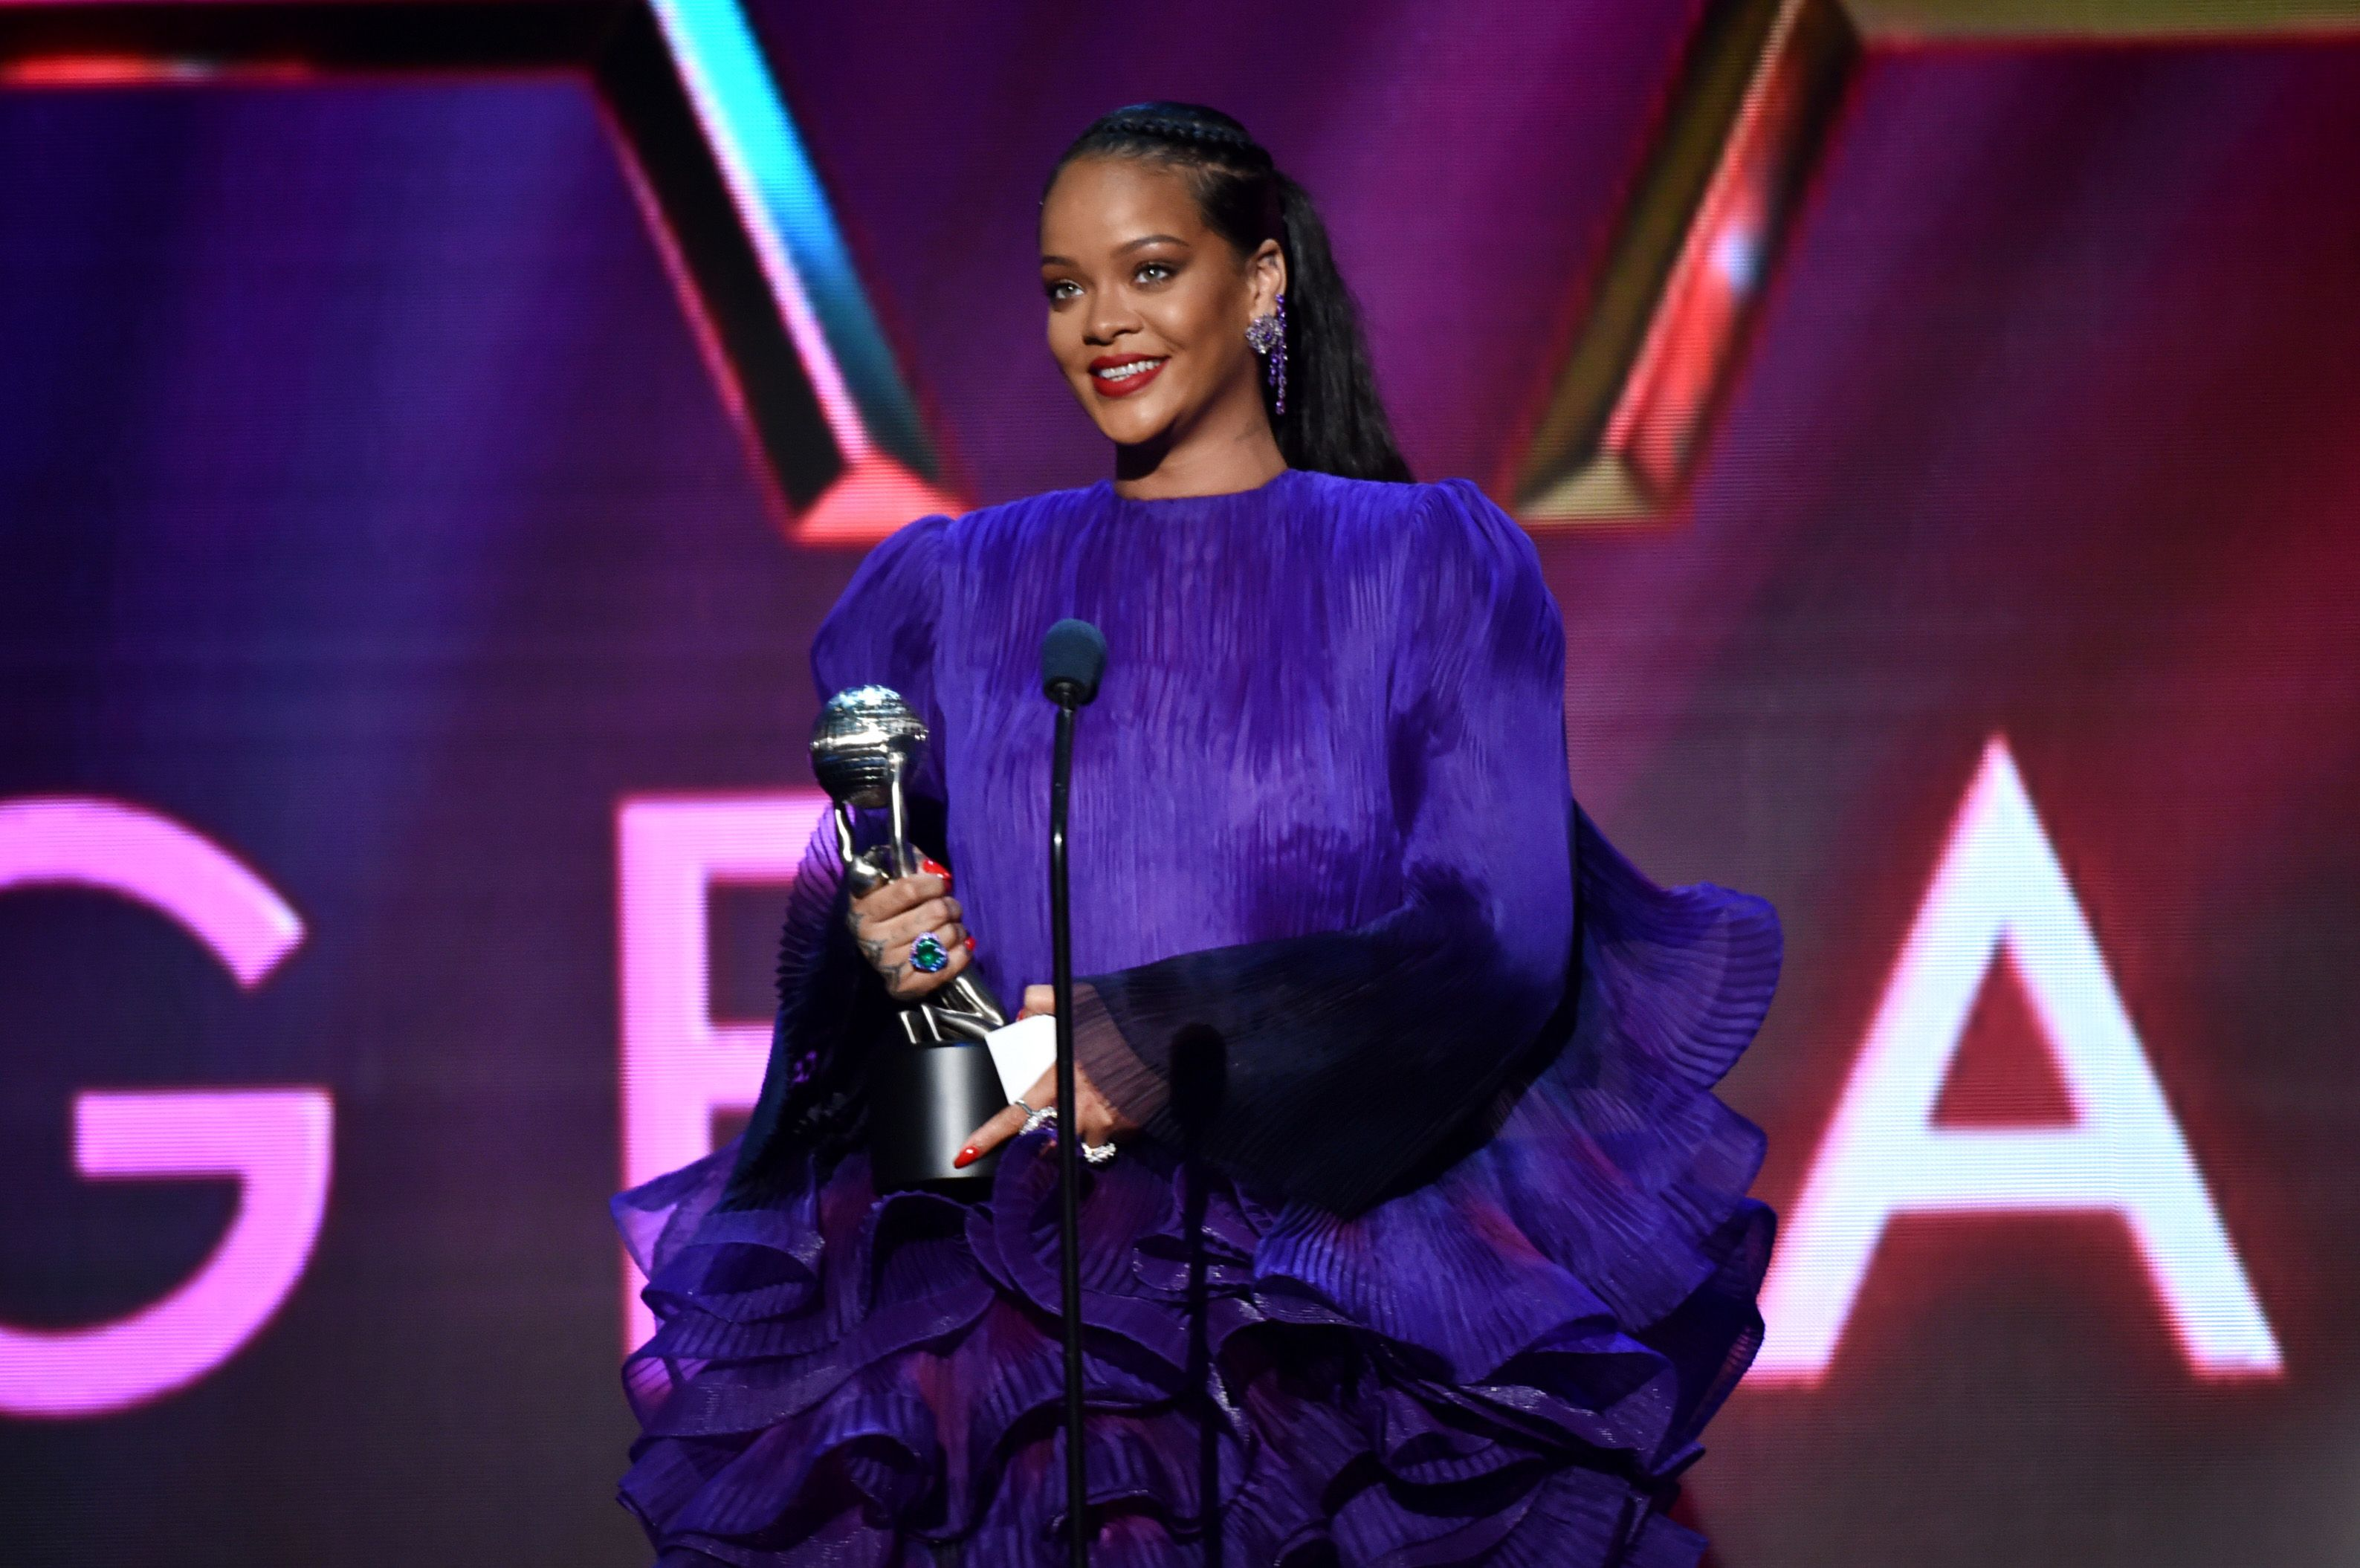 Rihanna on the NAACP awards stage.